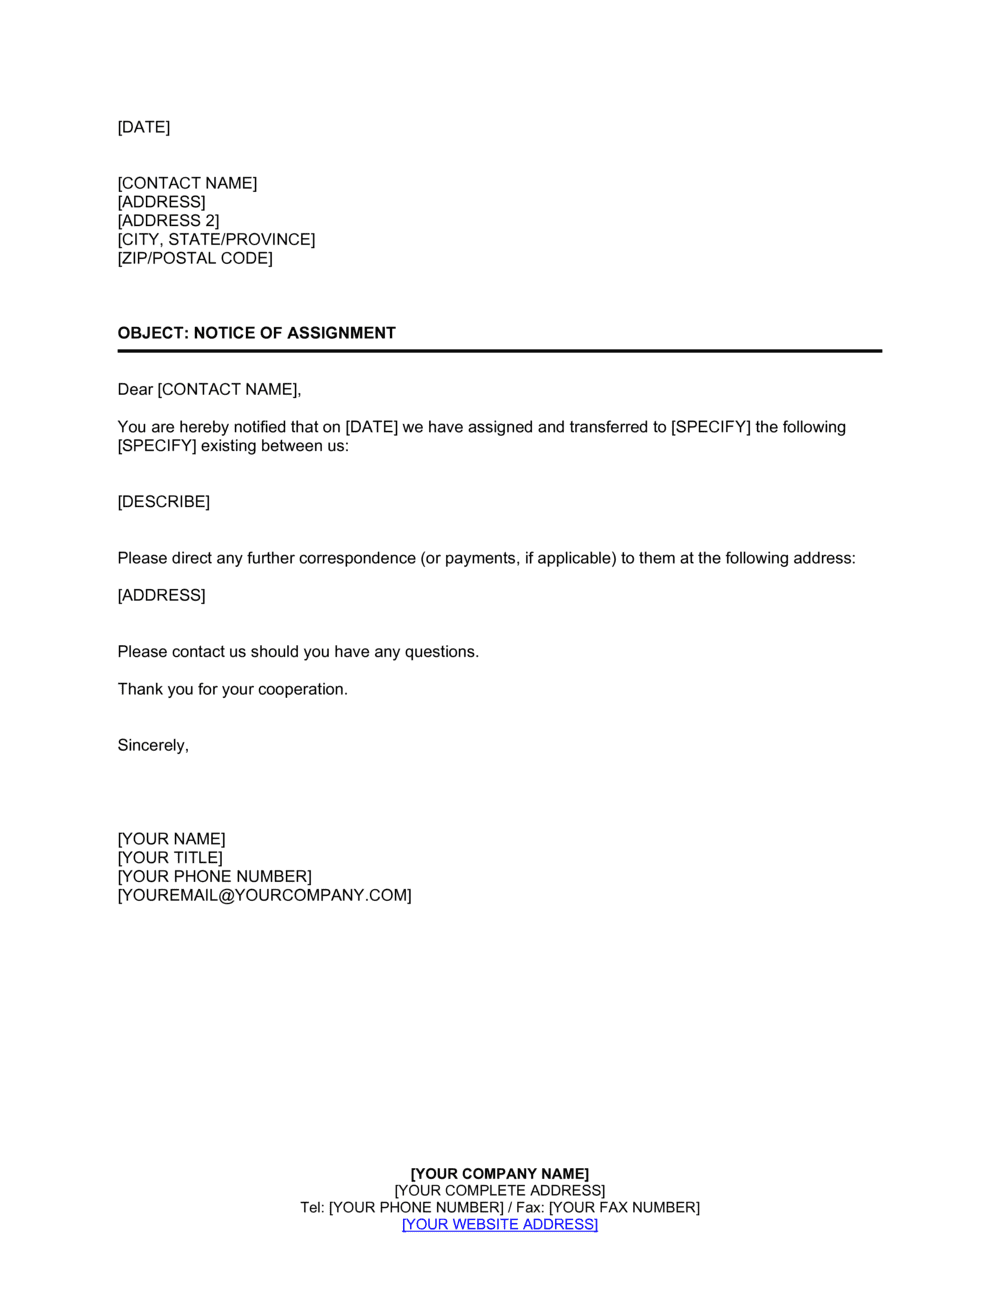 Business-in-a-Box's Notice of Assignment Template